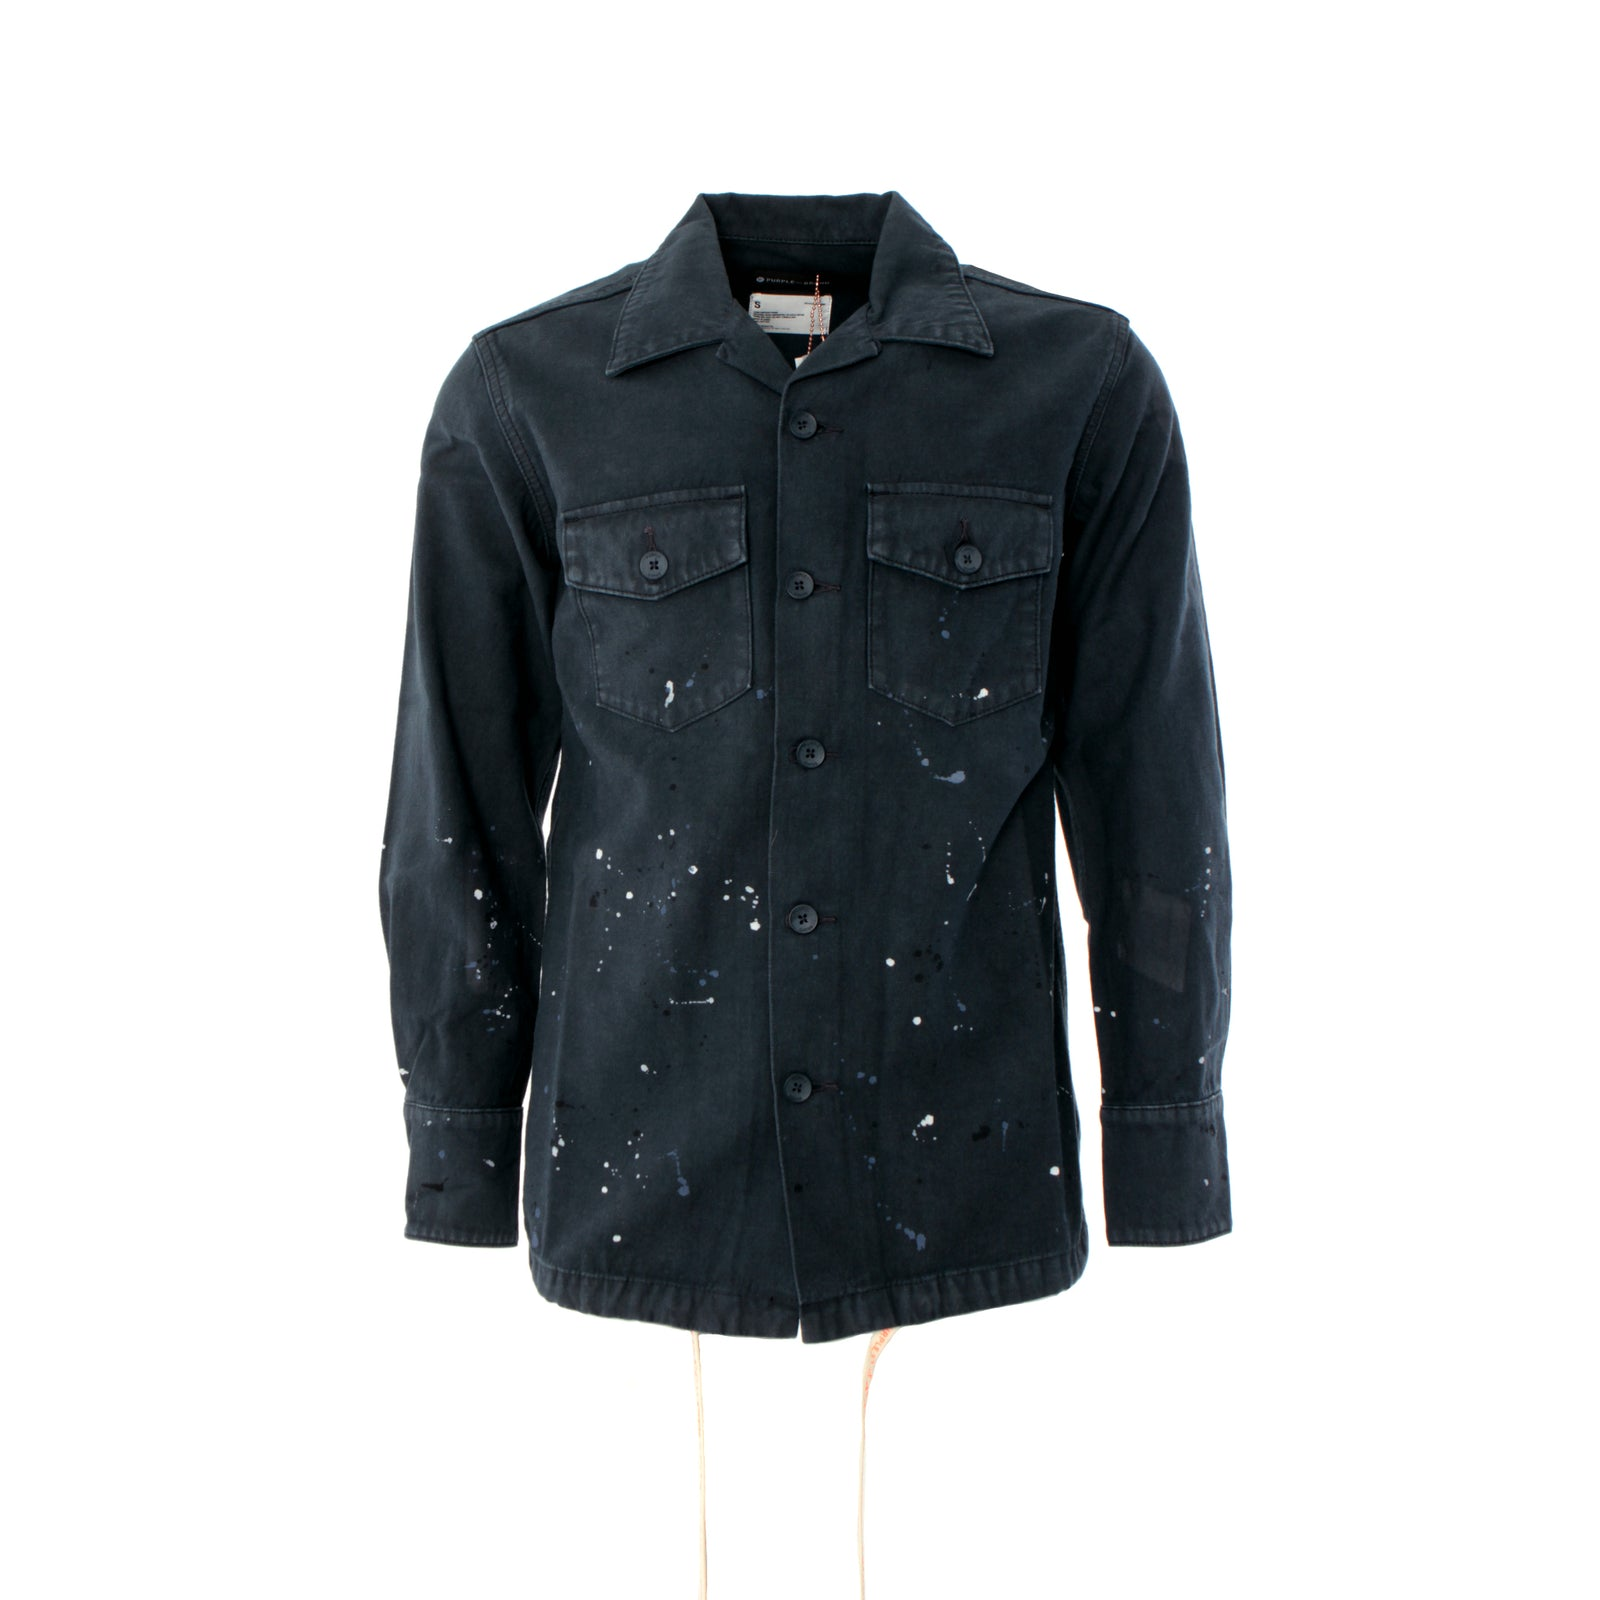 Purple Brand Overdryed Paint Fatigue Men's Shirt Navy